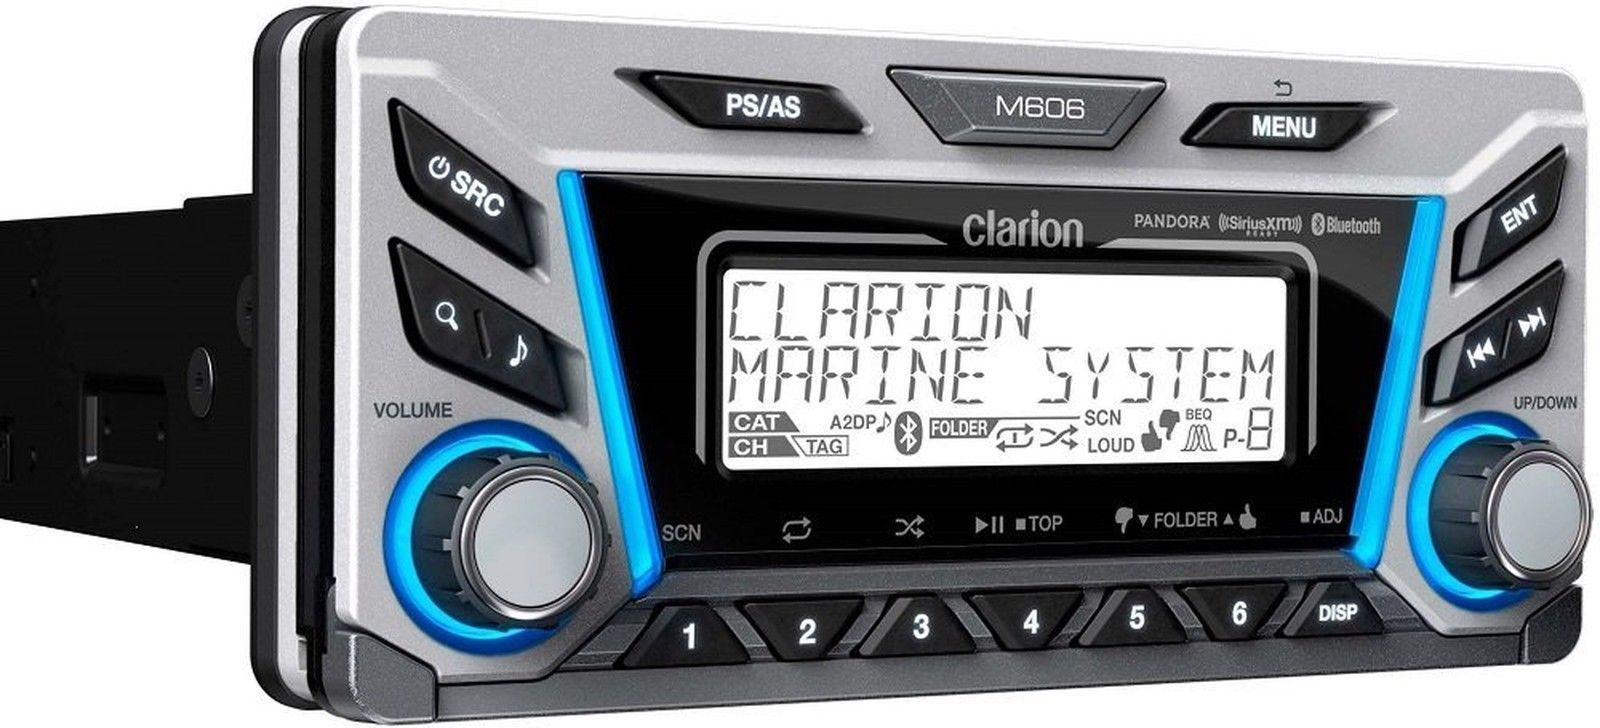 get 2018 s best deal on clarion m606 marine stereo rock the boat audio rh rocktheboatmarinestereo com Clarion MW1 Marine Radio